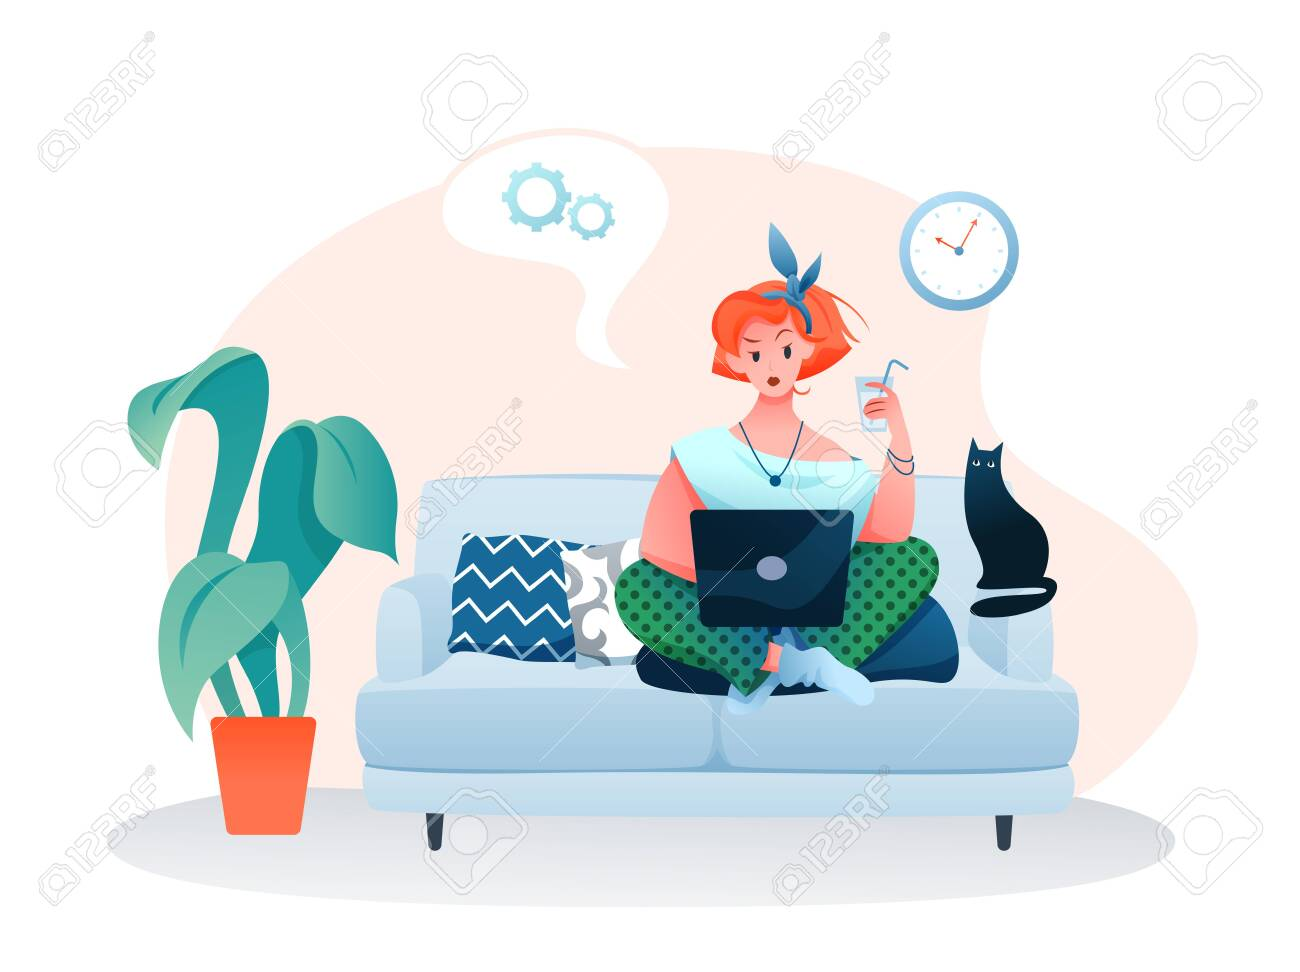 Freelance home work flat vector illustration. Cartoon young woman freelancer character working online with laptop, sitting on sofa in cozy home room apartment interior isolated on white - 153327127